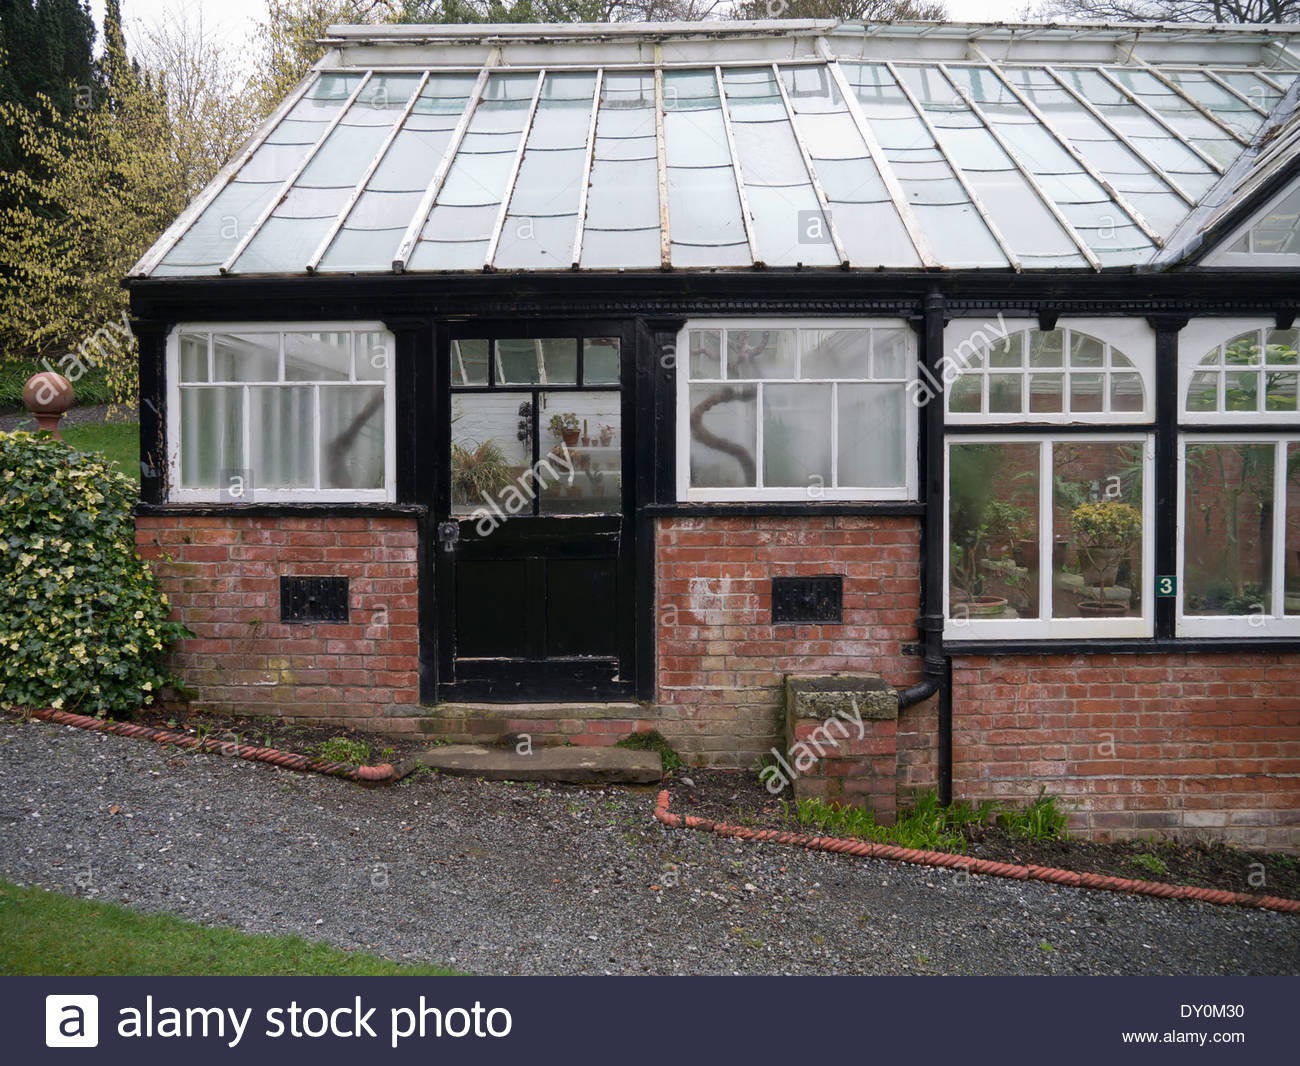 Exterior of a traditionally built greenhouse at Hergest Croft Gardens: Kington. - Stock Image